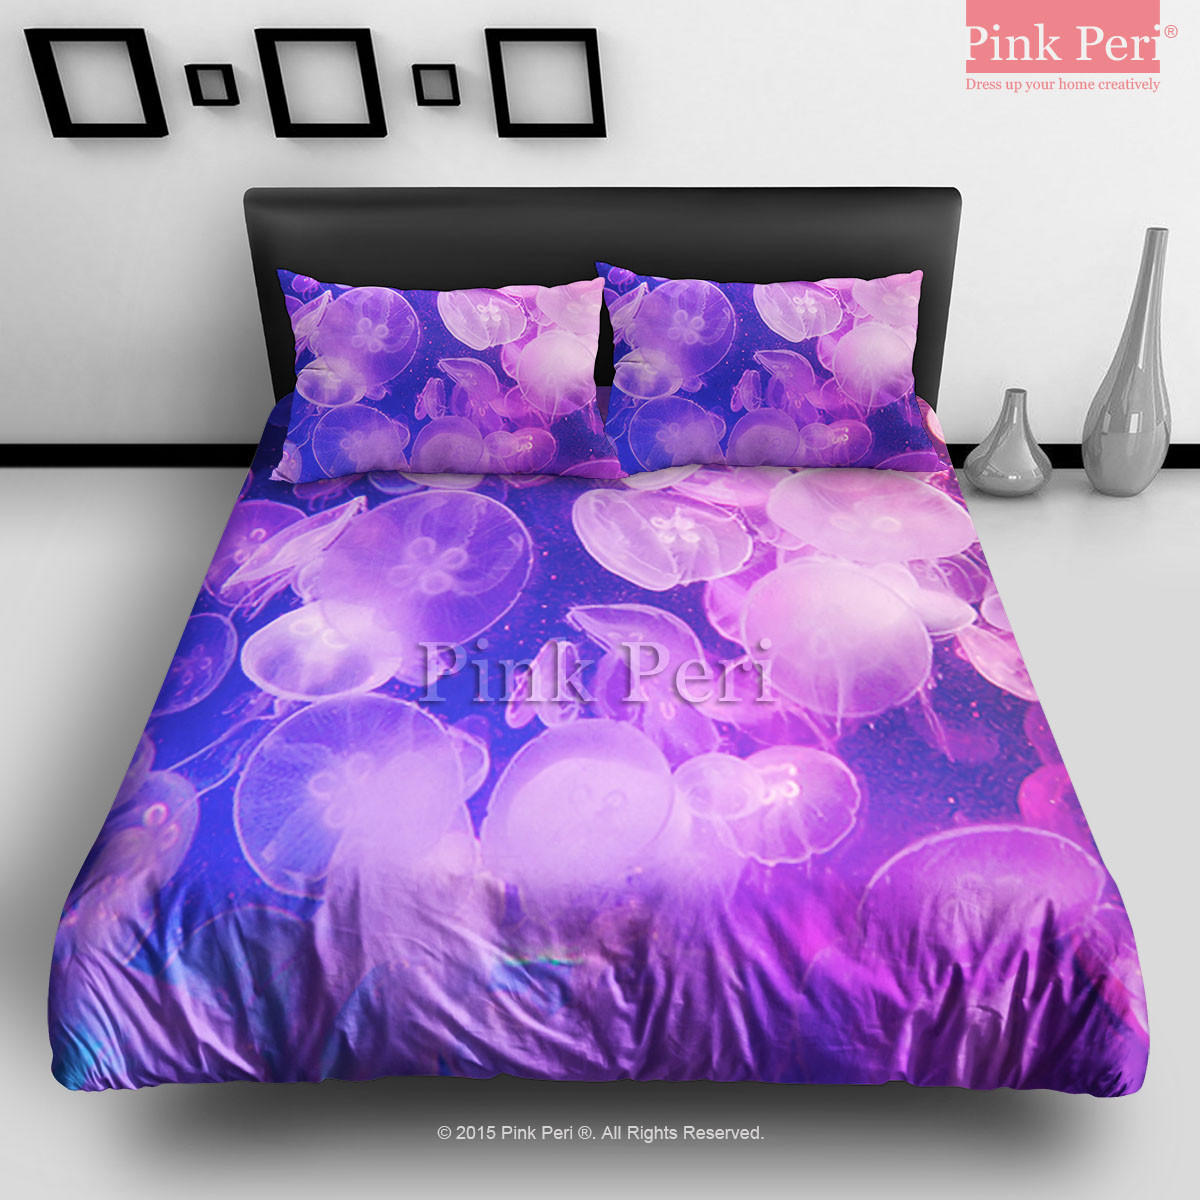 Dockers Bed Sheets